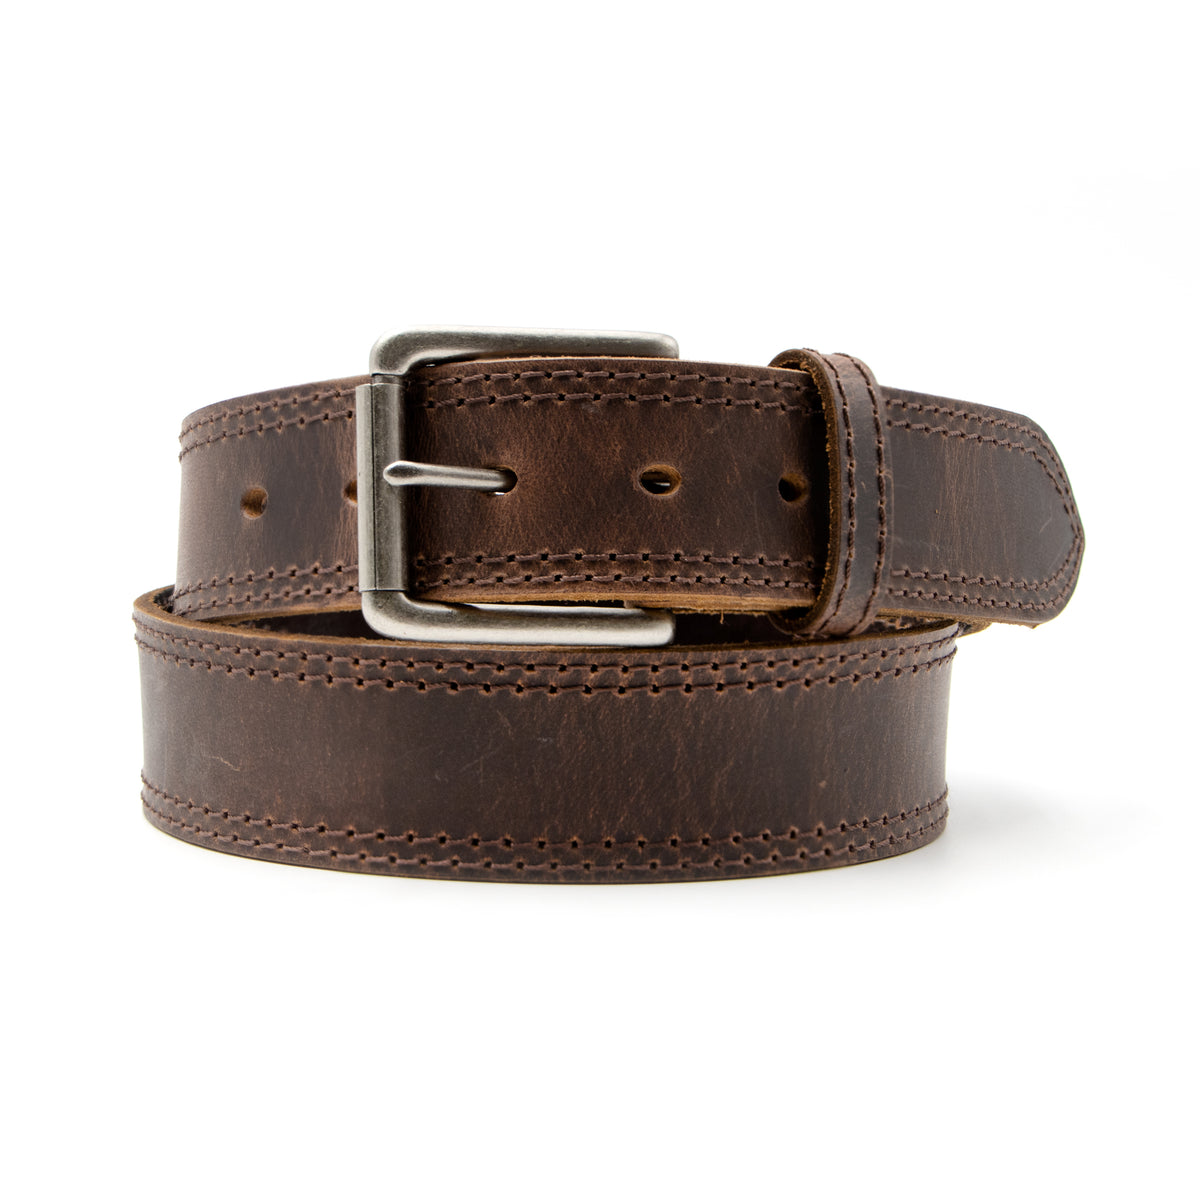 "1 1/2"" Roller Buckle Double Stitch Belt"